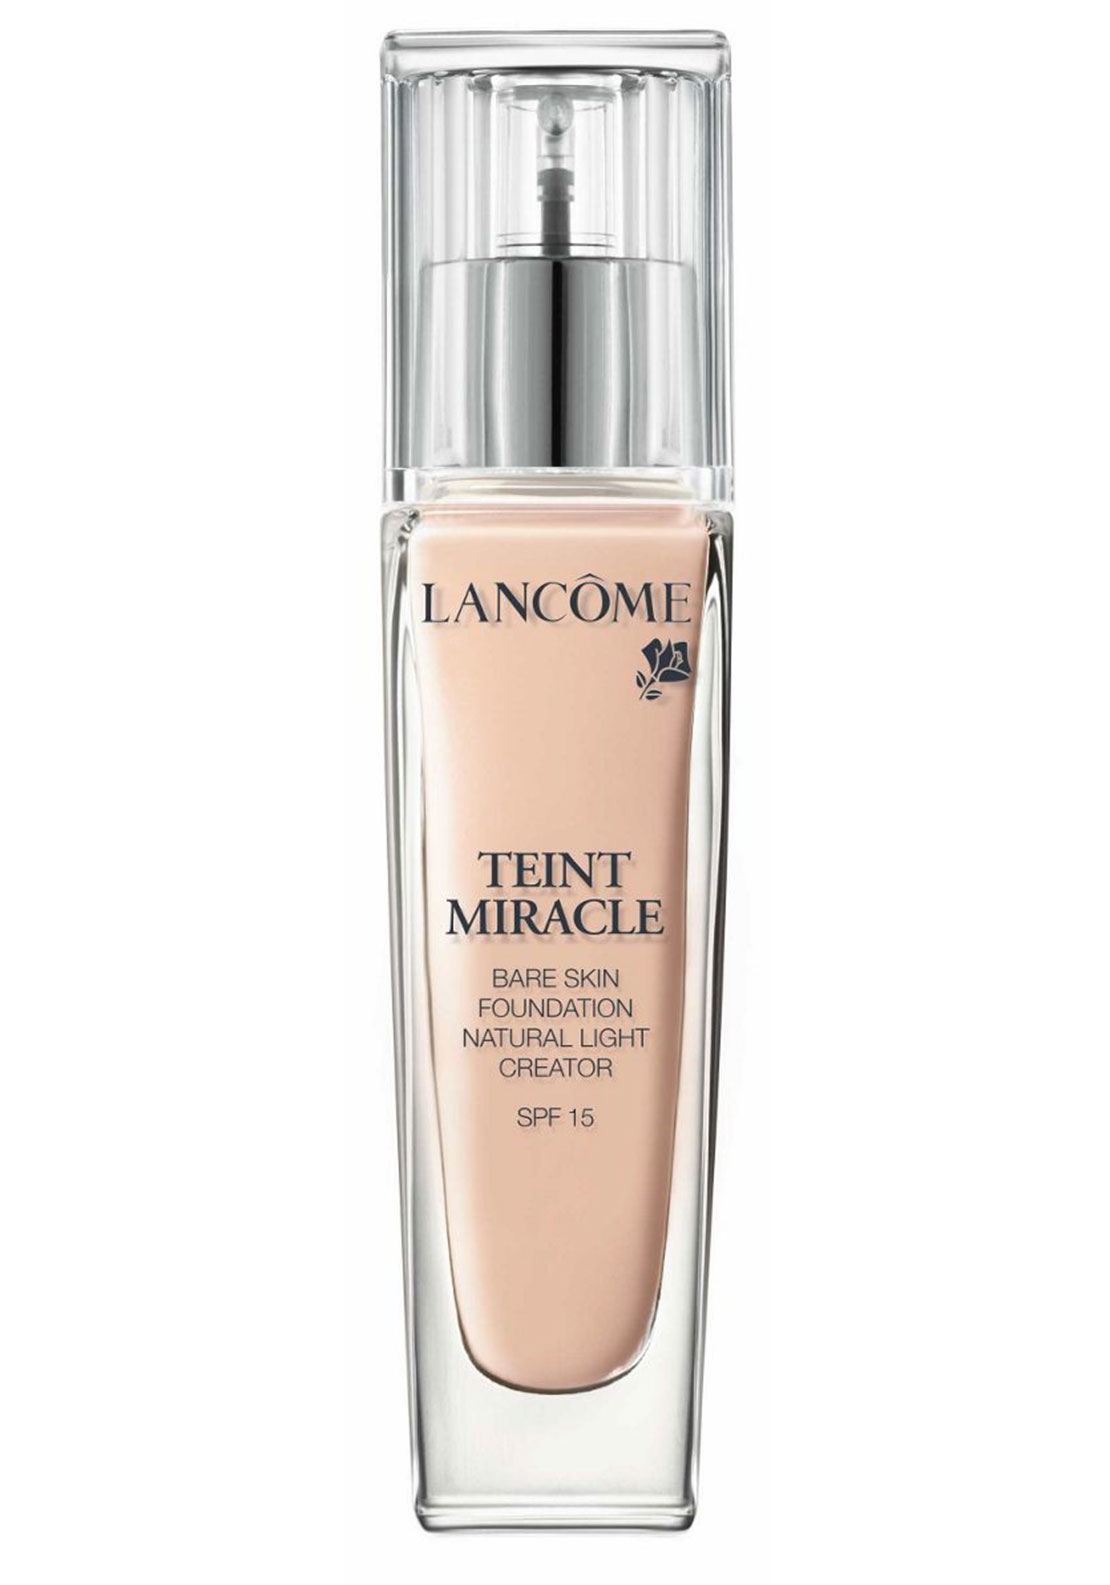 Lancome Teint Miracle Foundation 007, Lancome Beige Rose